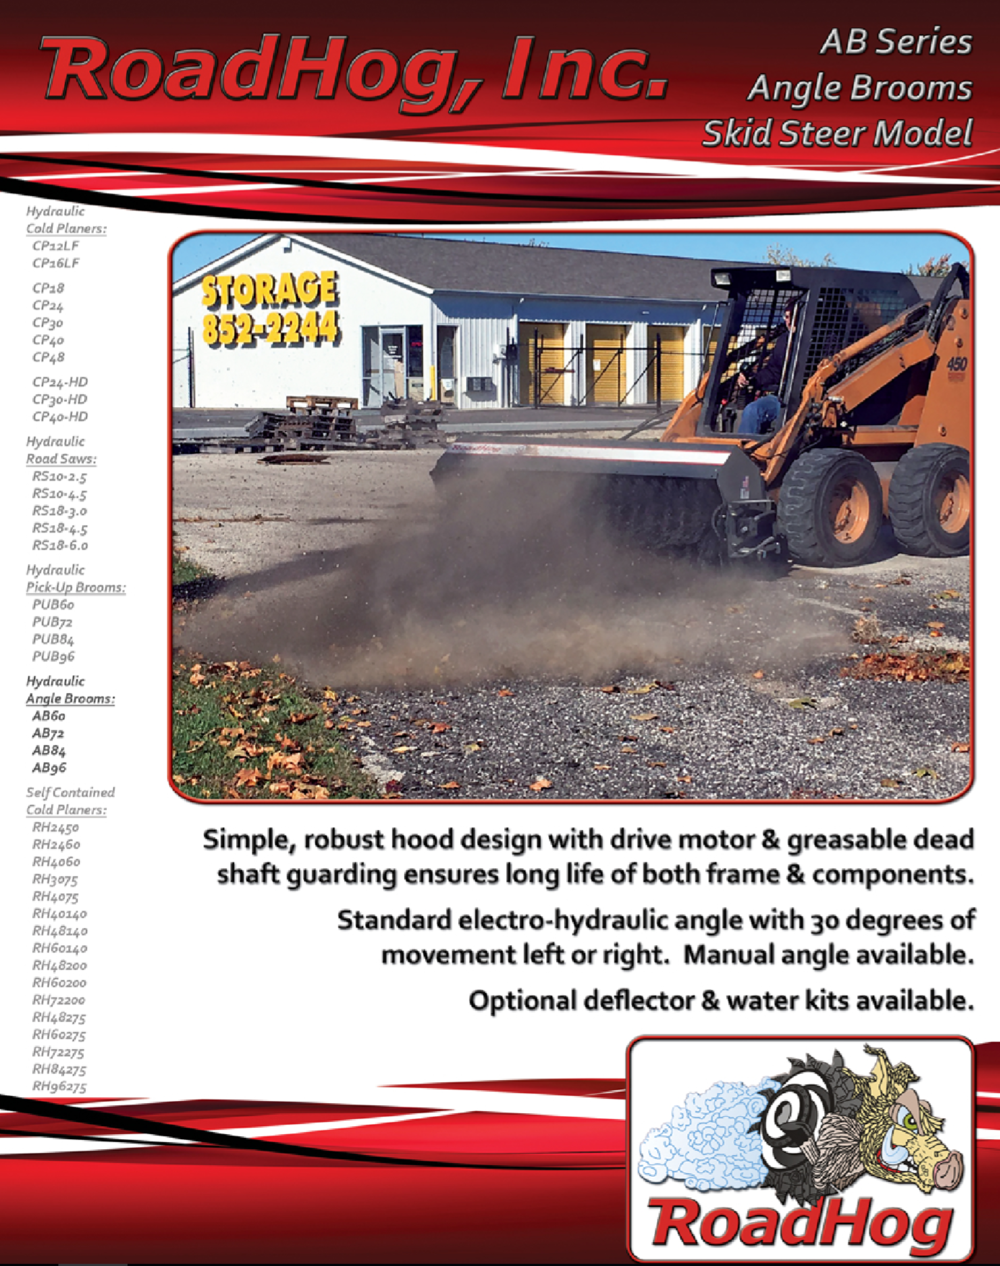 Angle Broom Brochure